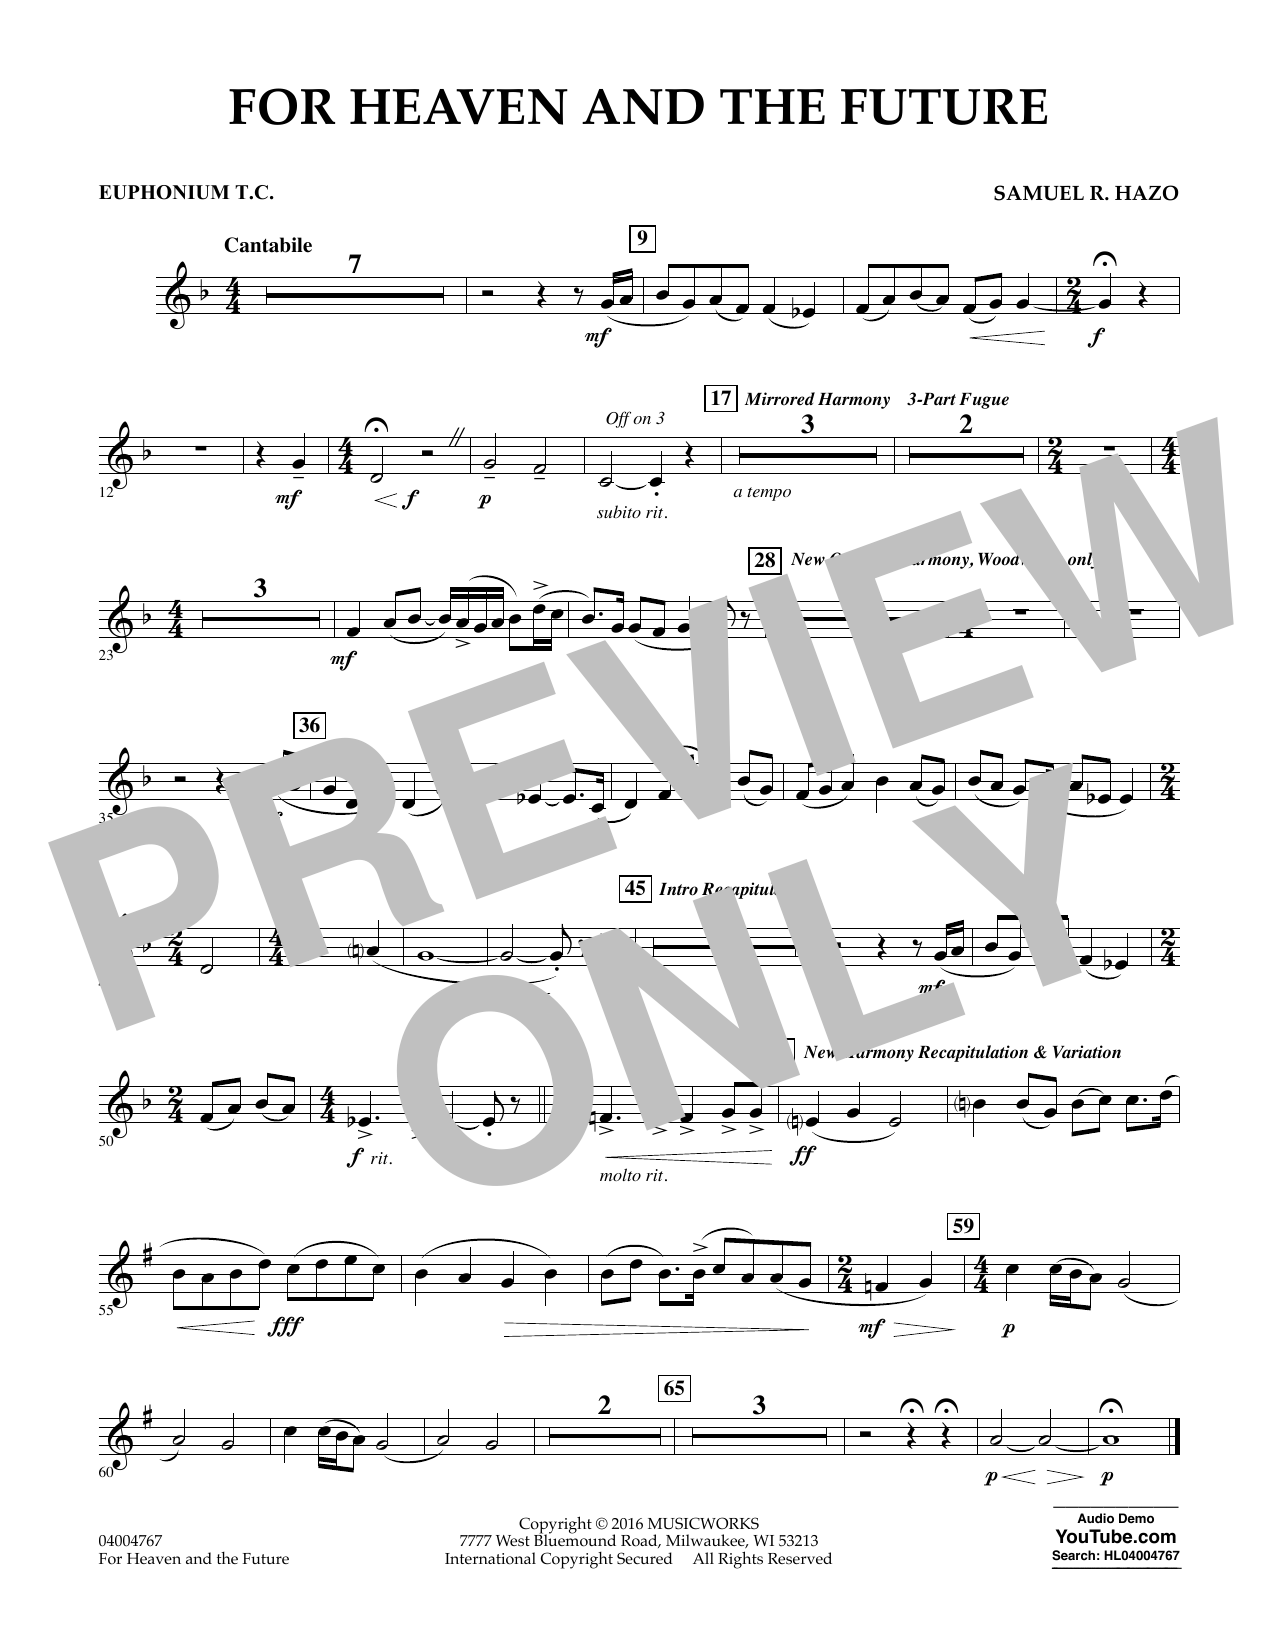 For Heaven and the Future - Euphonium in Treble Clef (Concert Band)